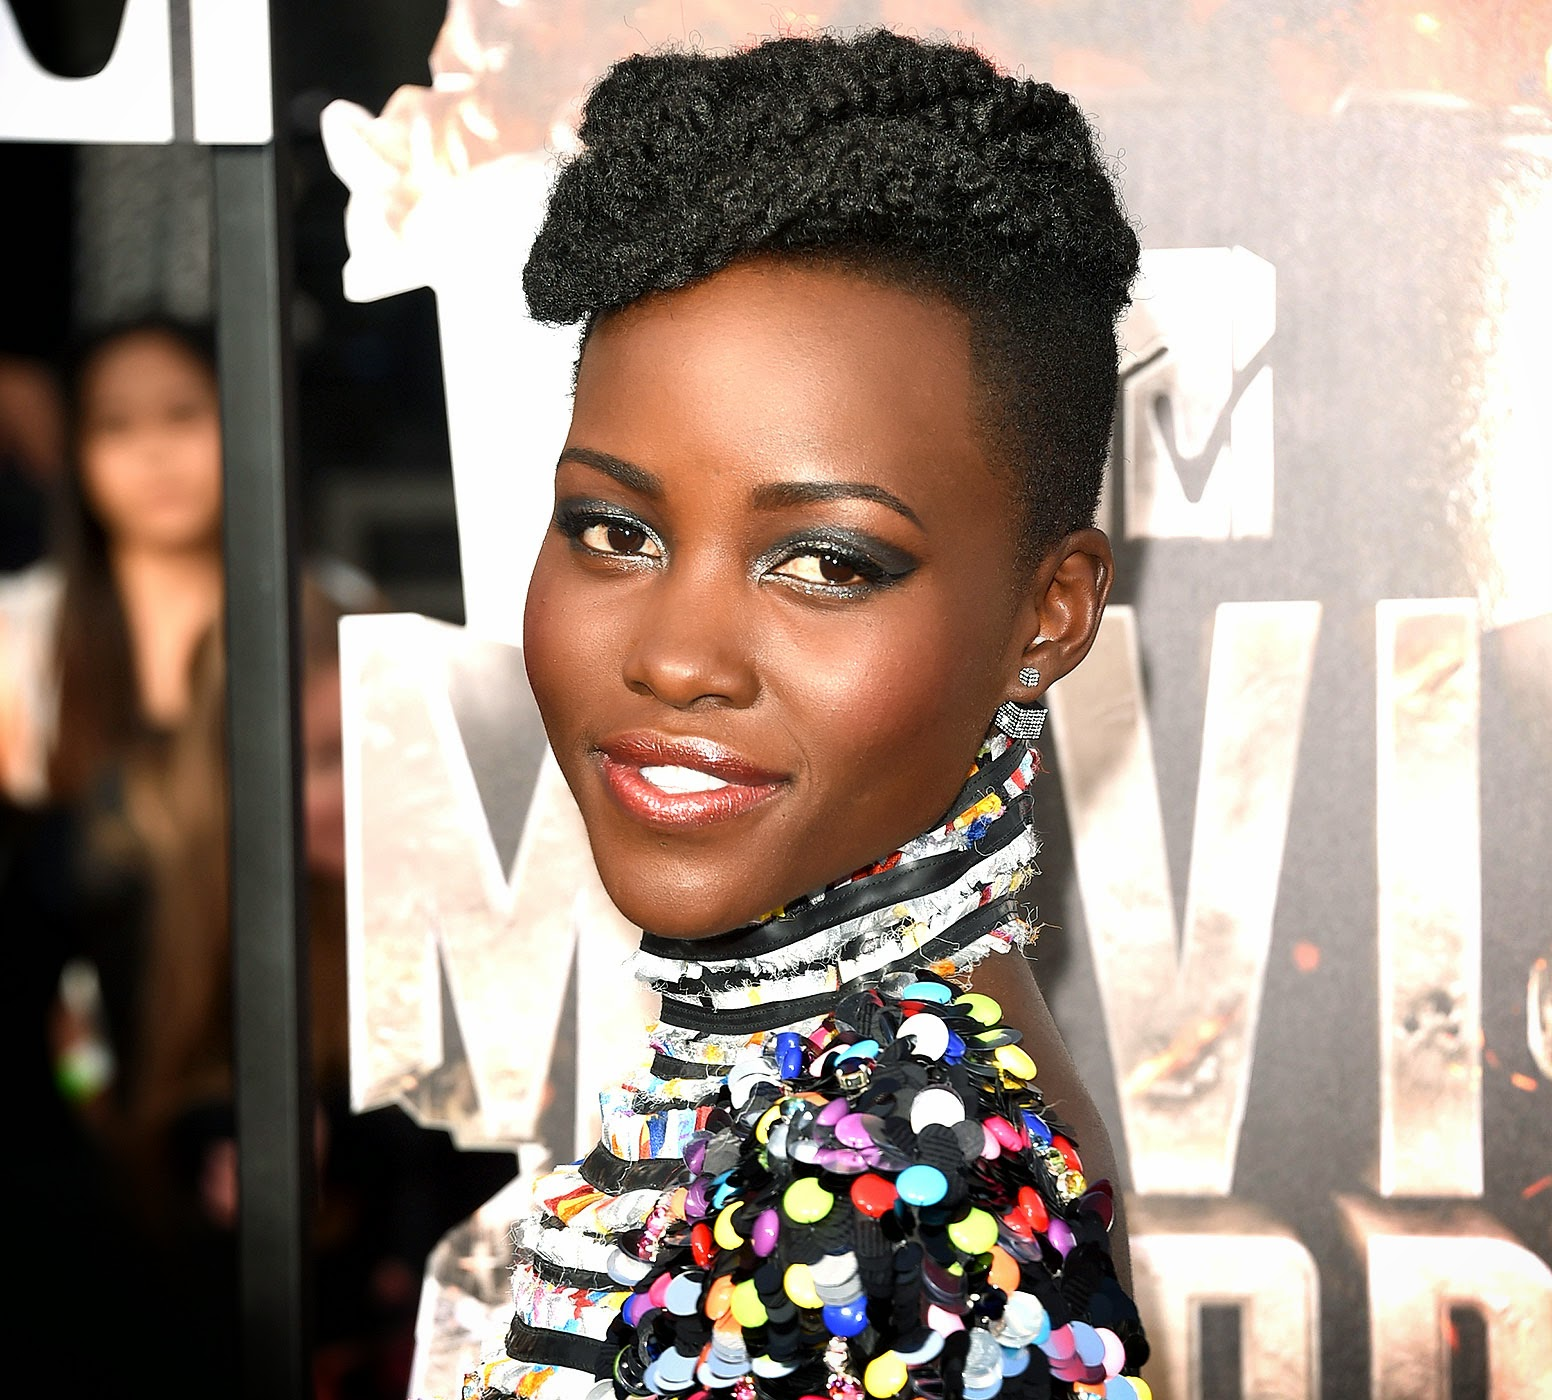 100% kanekalon hair looks great on Lupita Nyong'o on the red carpet